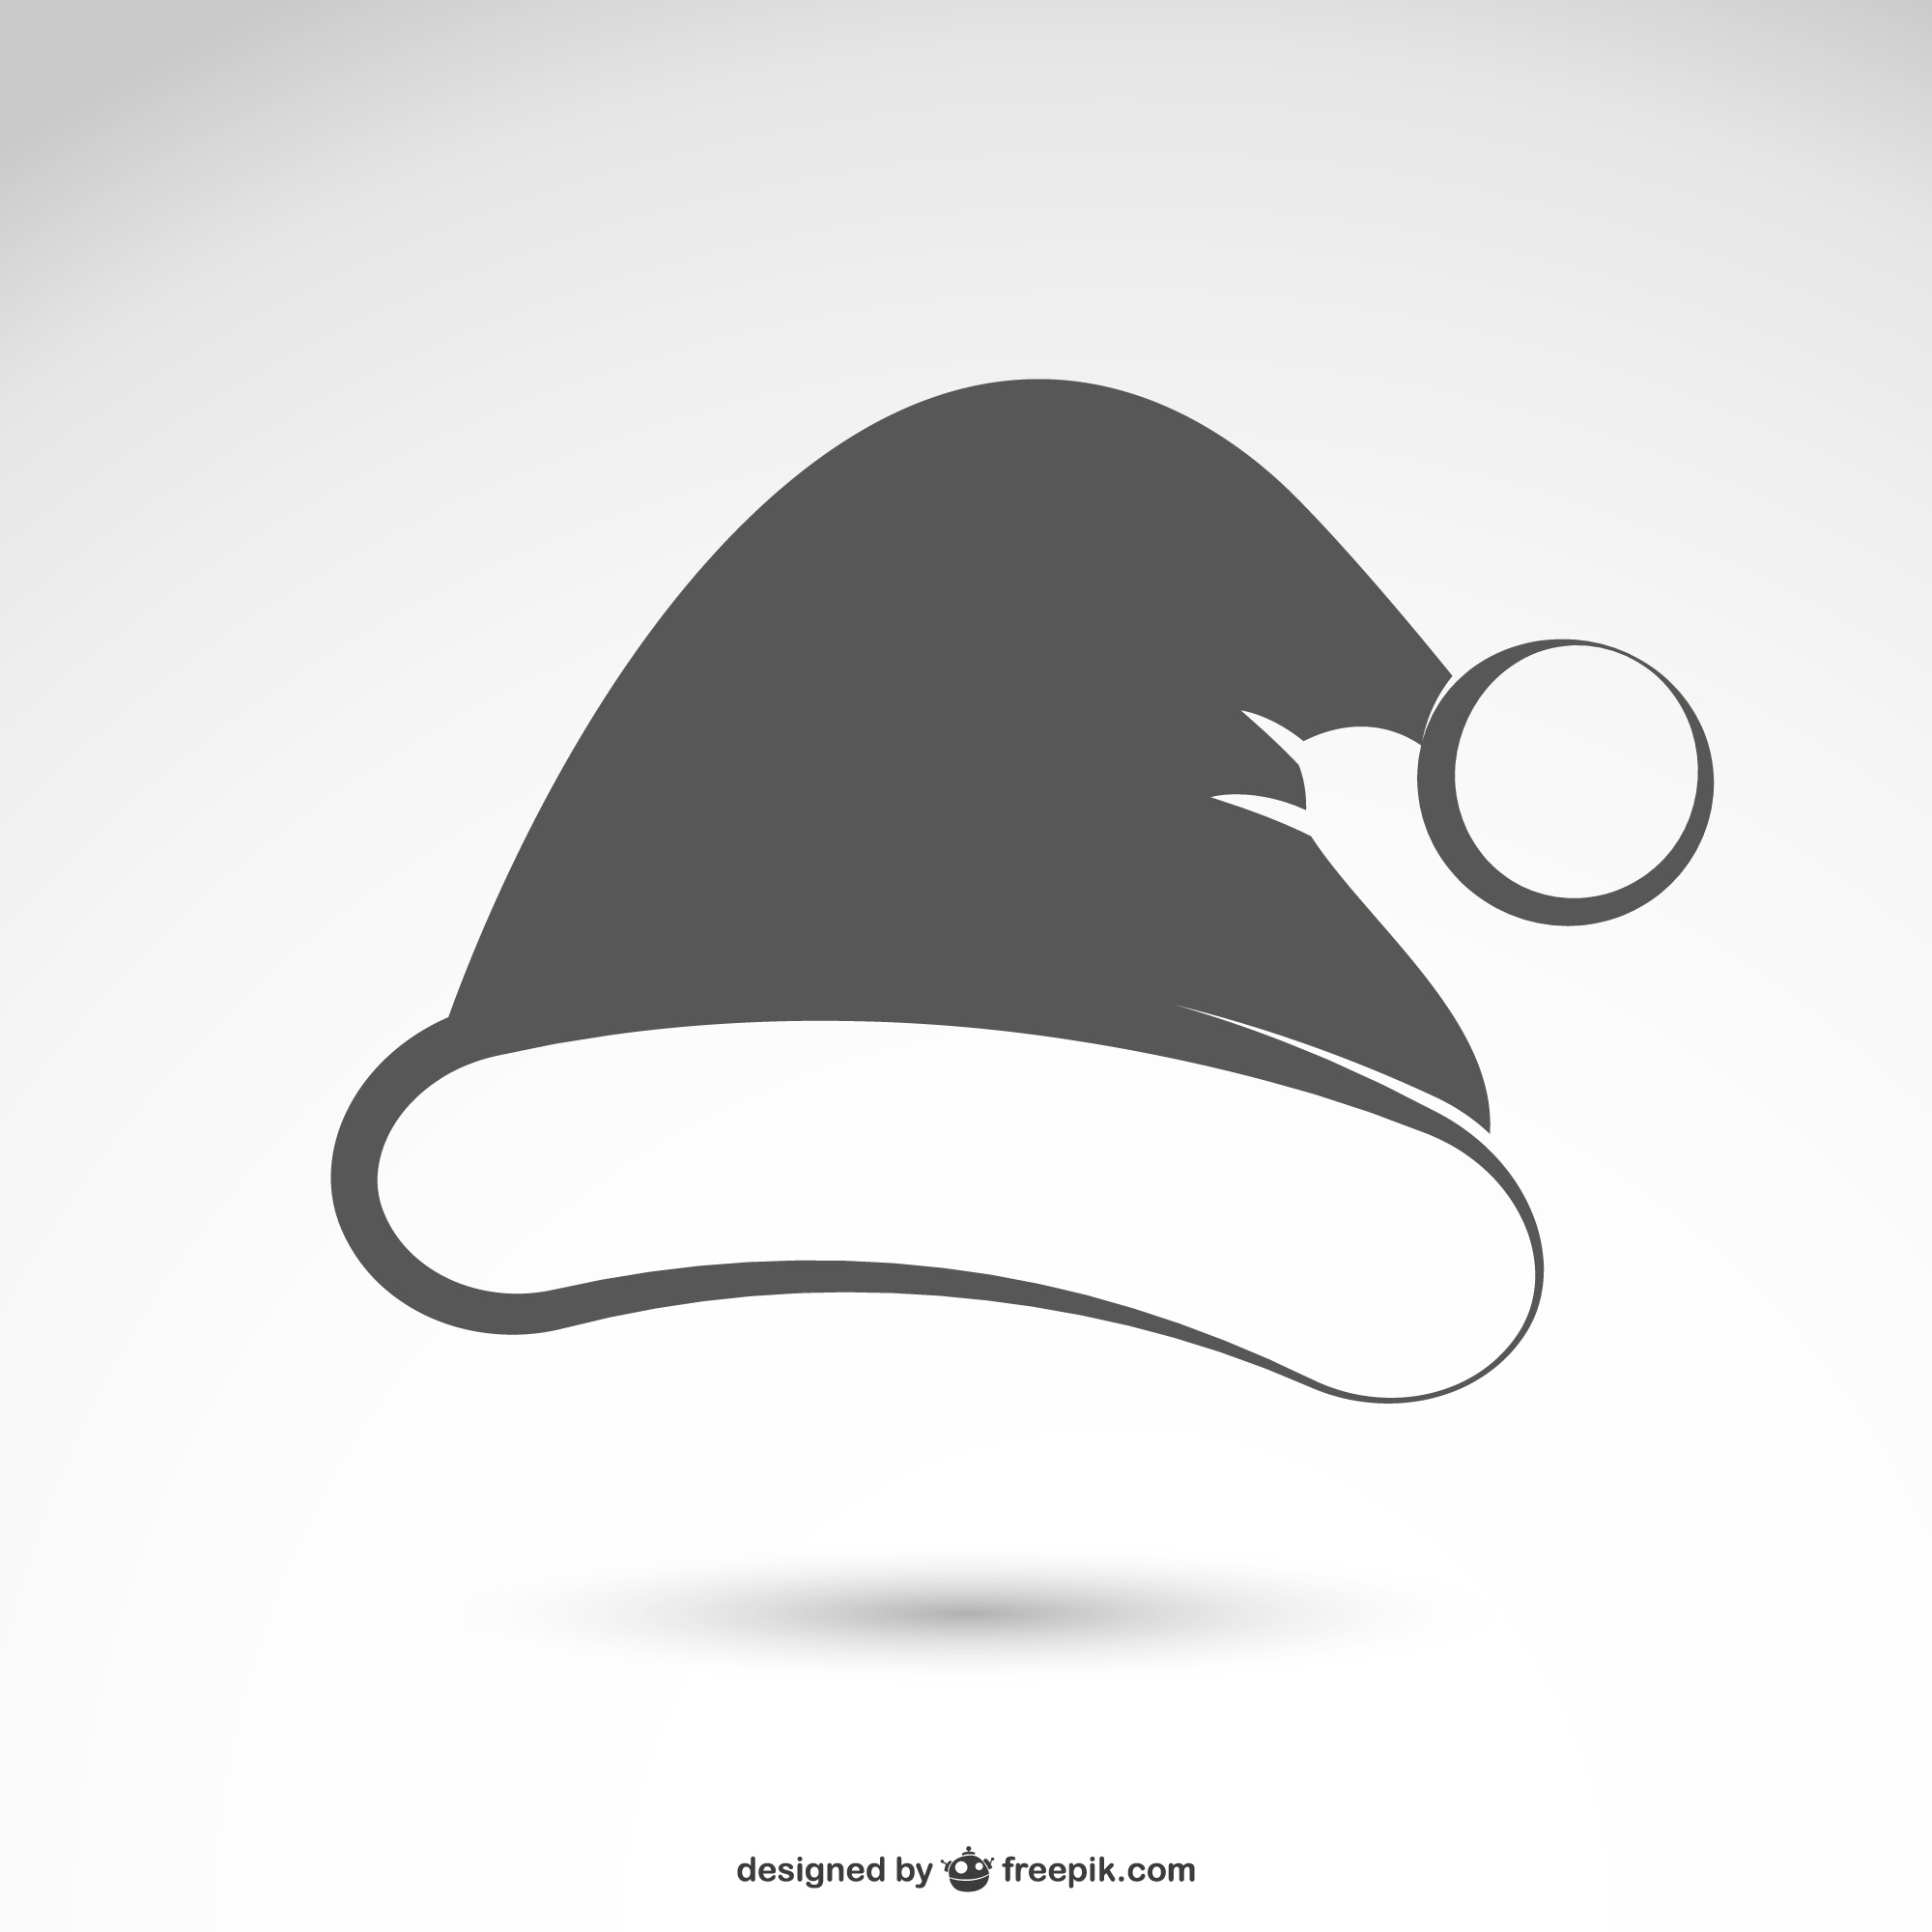 Black and white Santa Claus hat